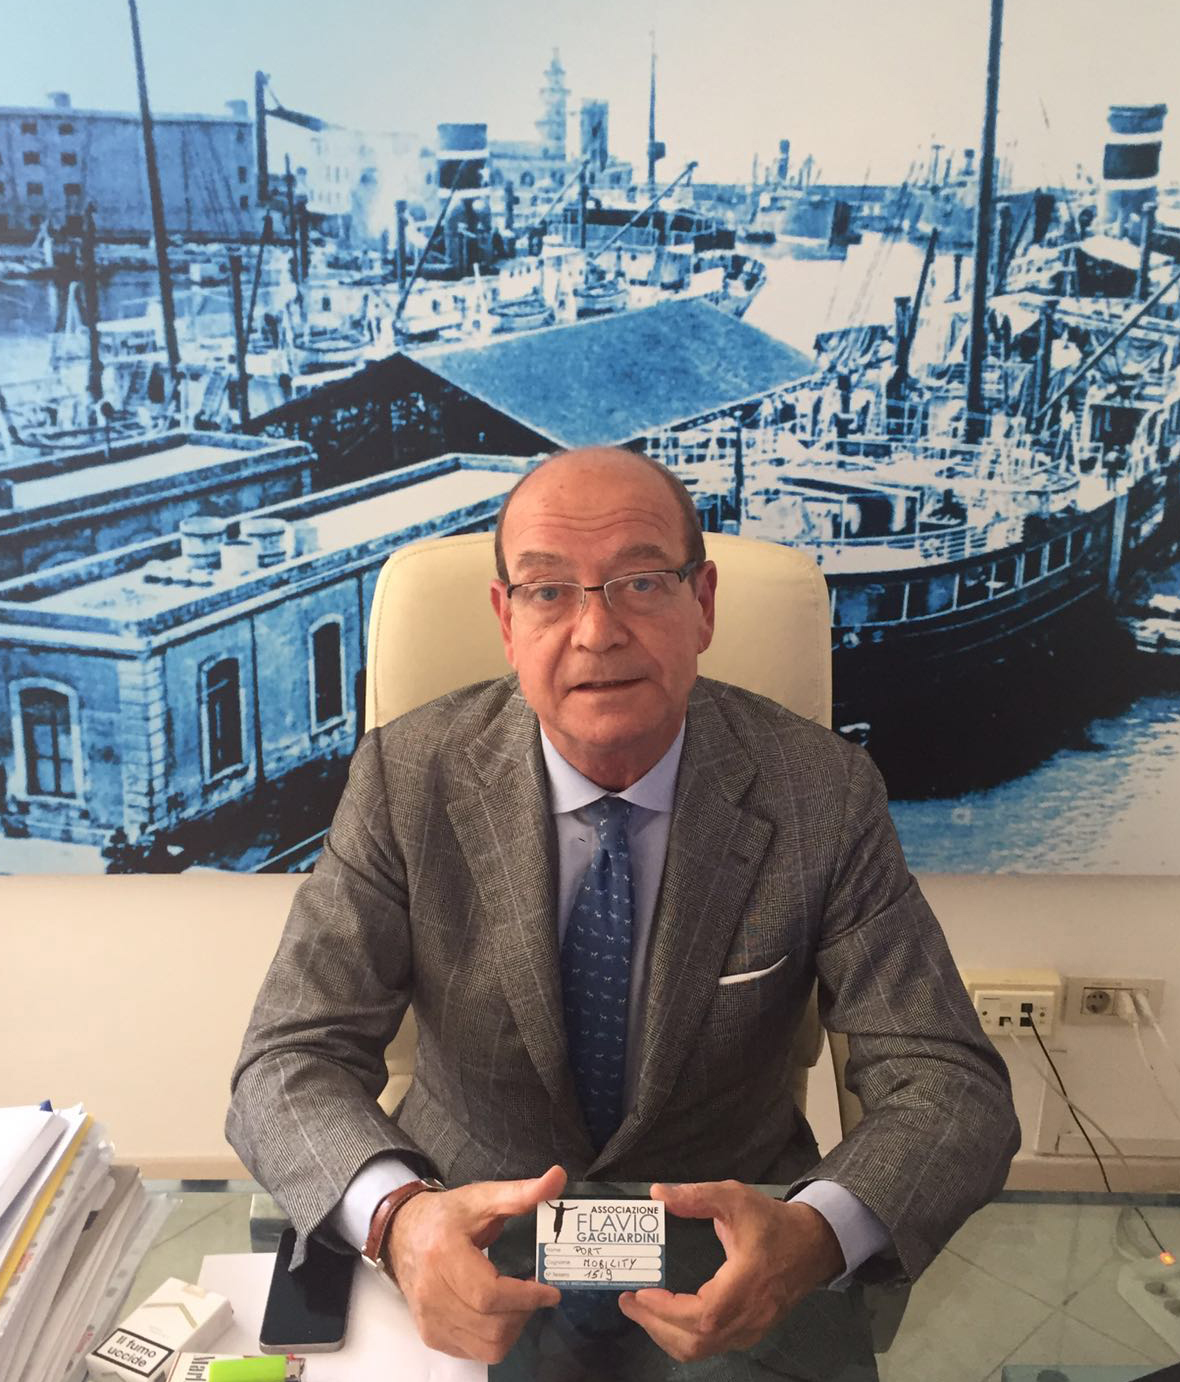 Edgardo Azzopardi, Special Counselor of Port Mobility, with the Flavio Gagliardini Association card